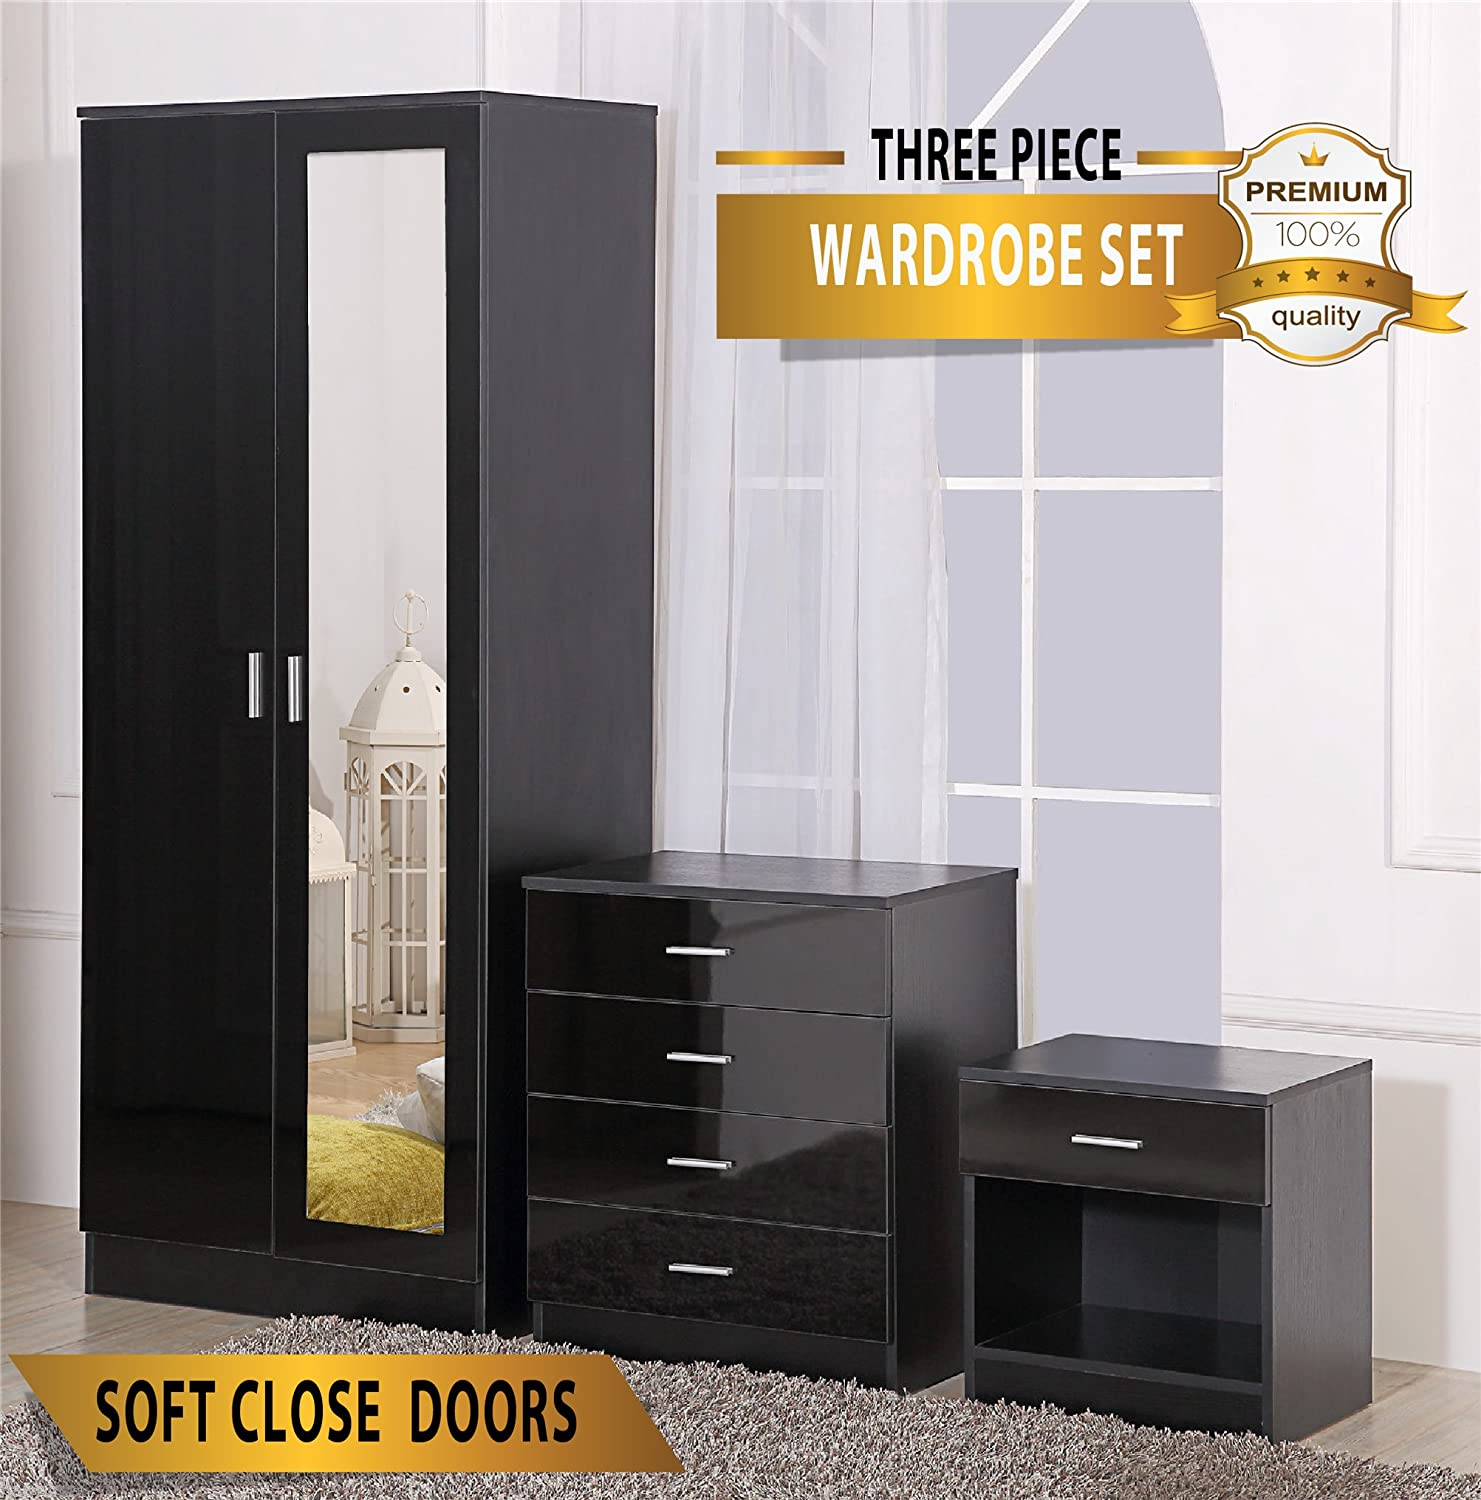 Mirrored High Gloss 3 Piece Bedroom Furniture Set - Soft Close Wardrobe, 4 Drawer Chest, Bedside Cabinet (Black on Black) Harmin Ltd